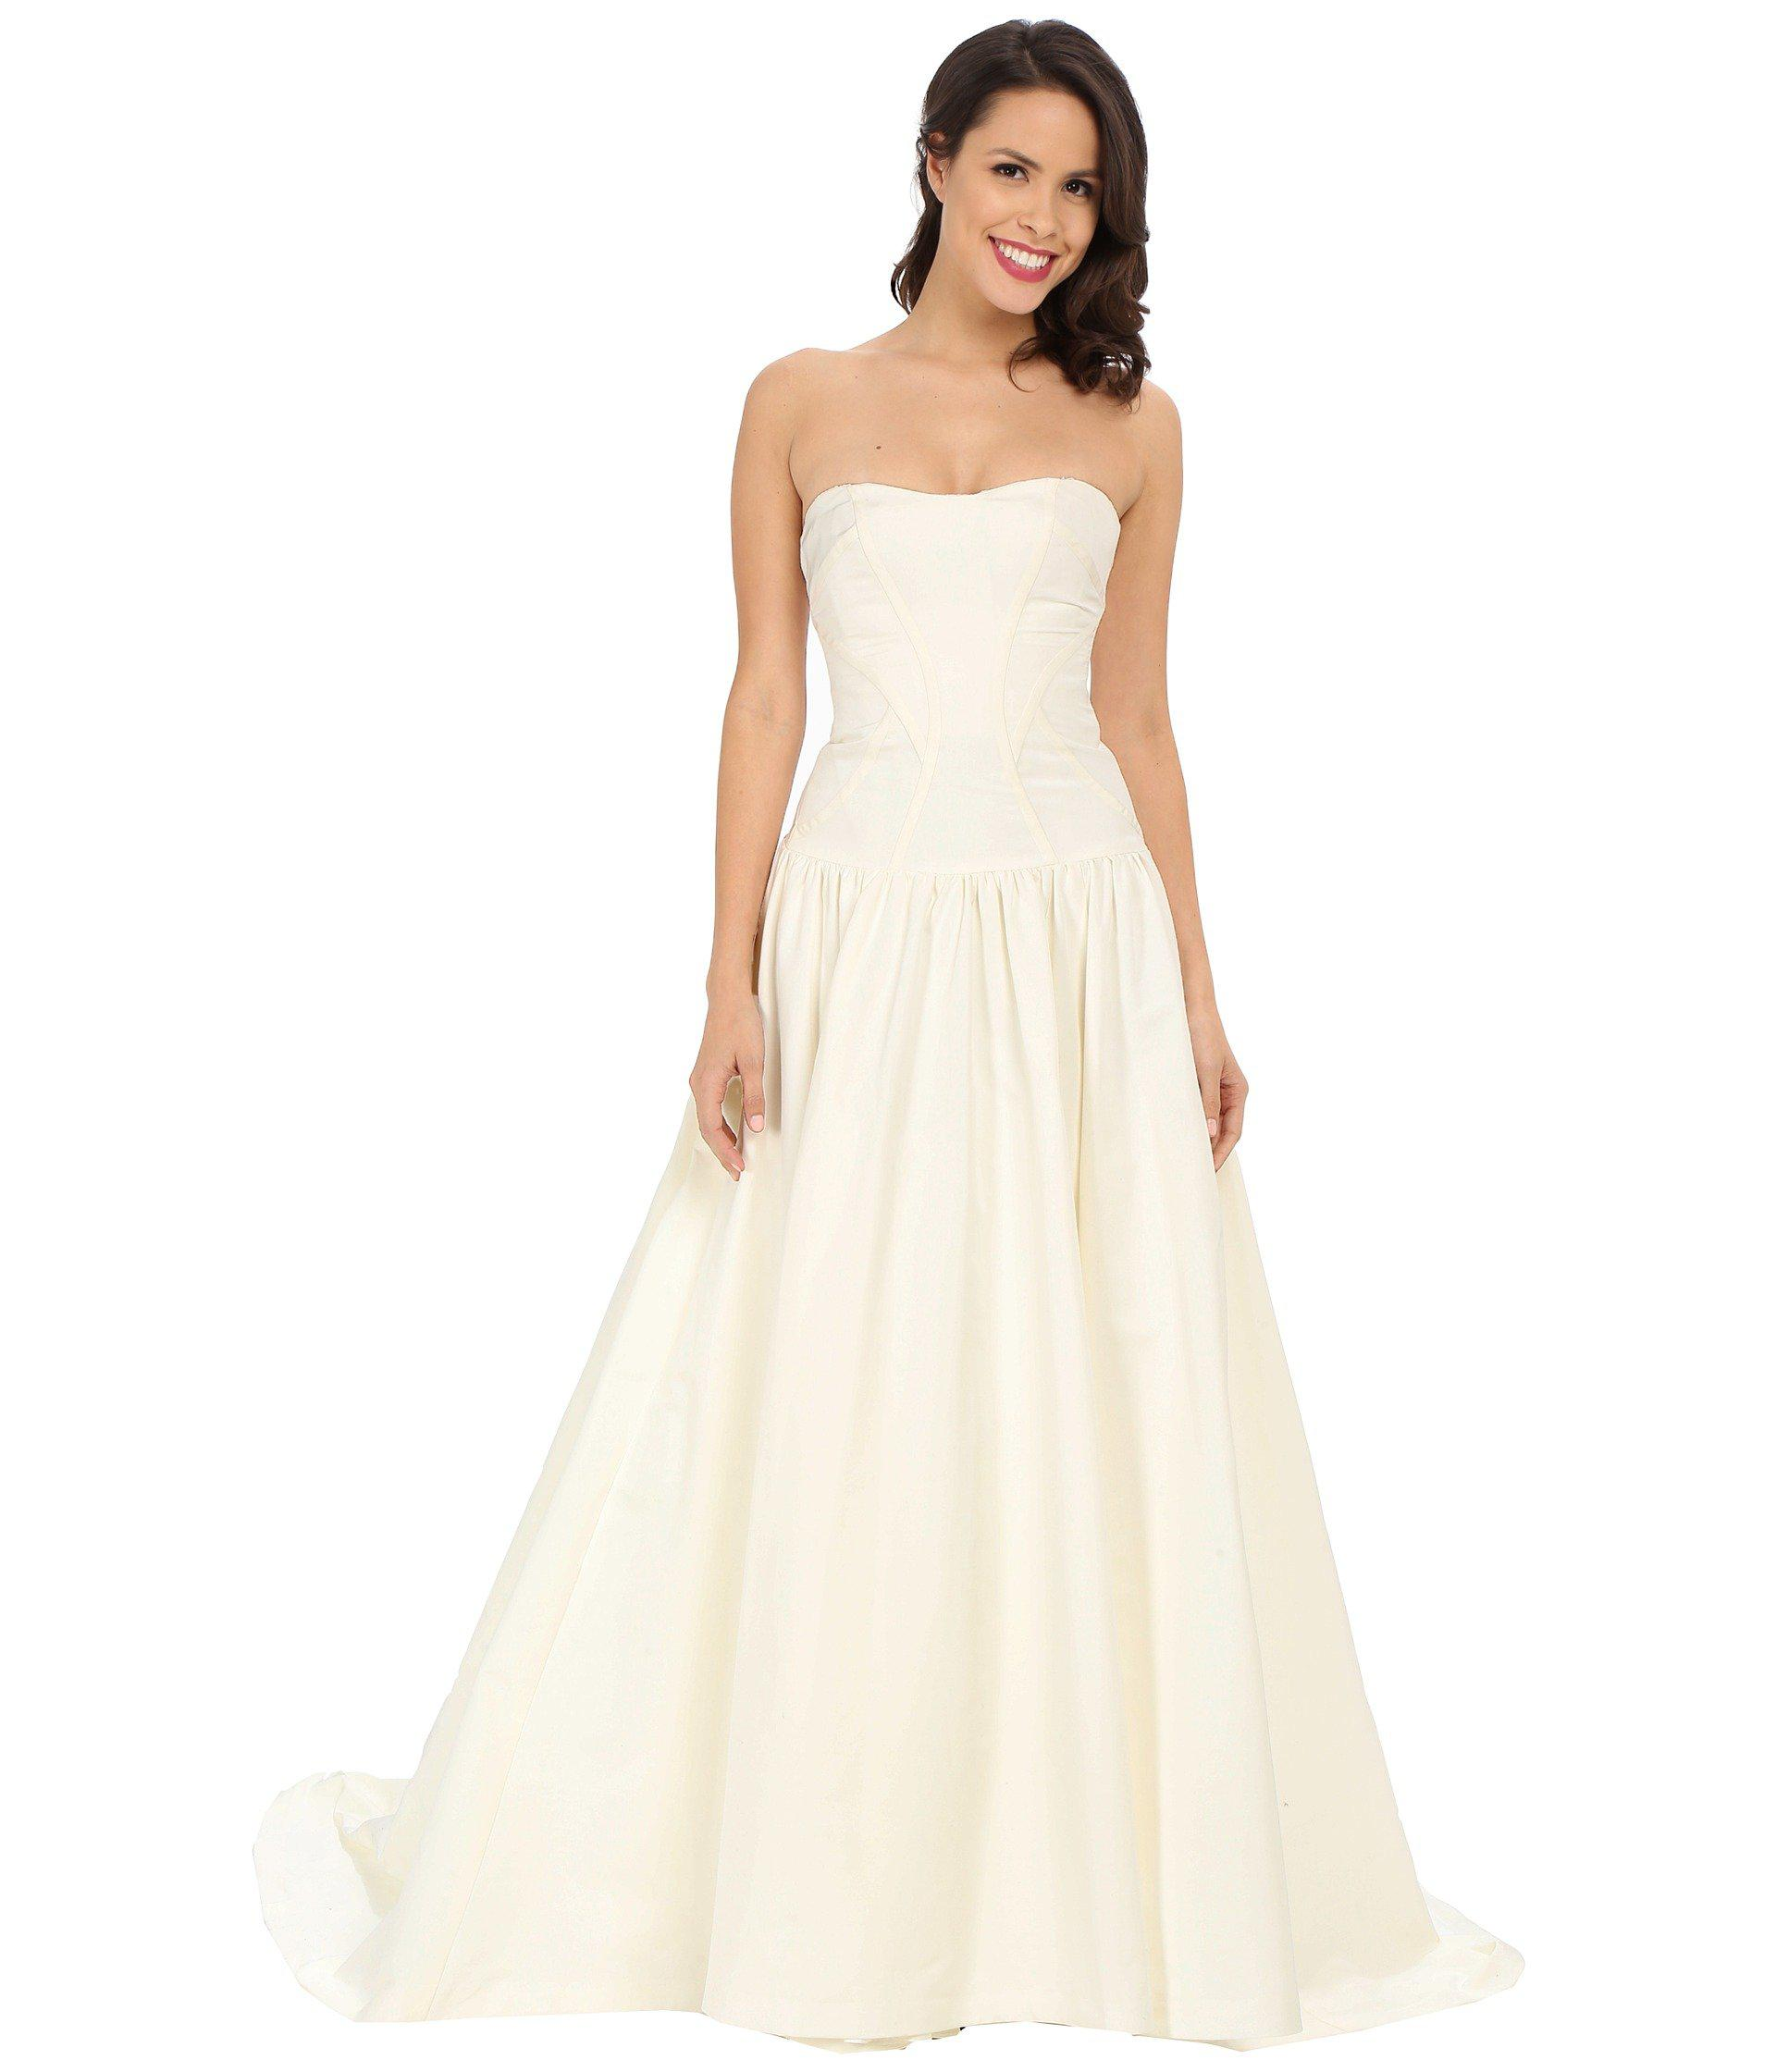 Lyst - Nicole Miller Laurel Silk Faille Bridal Gown in White